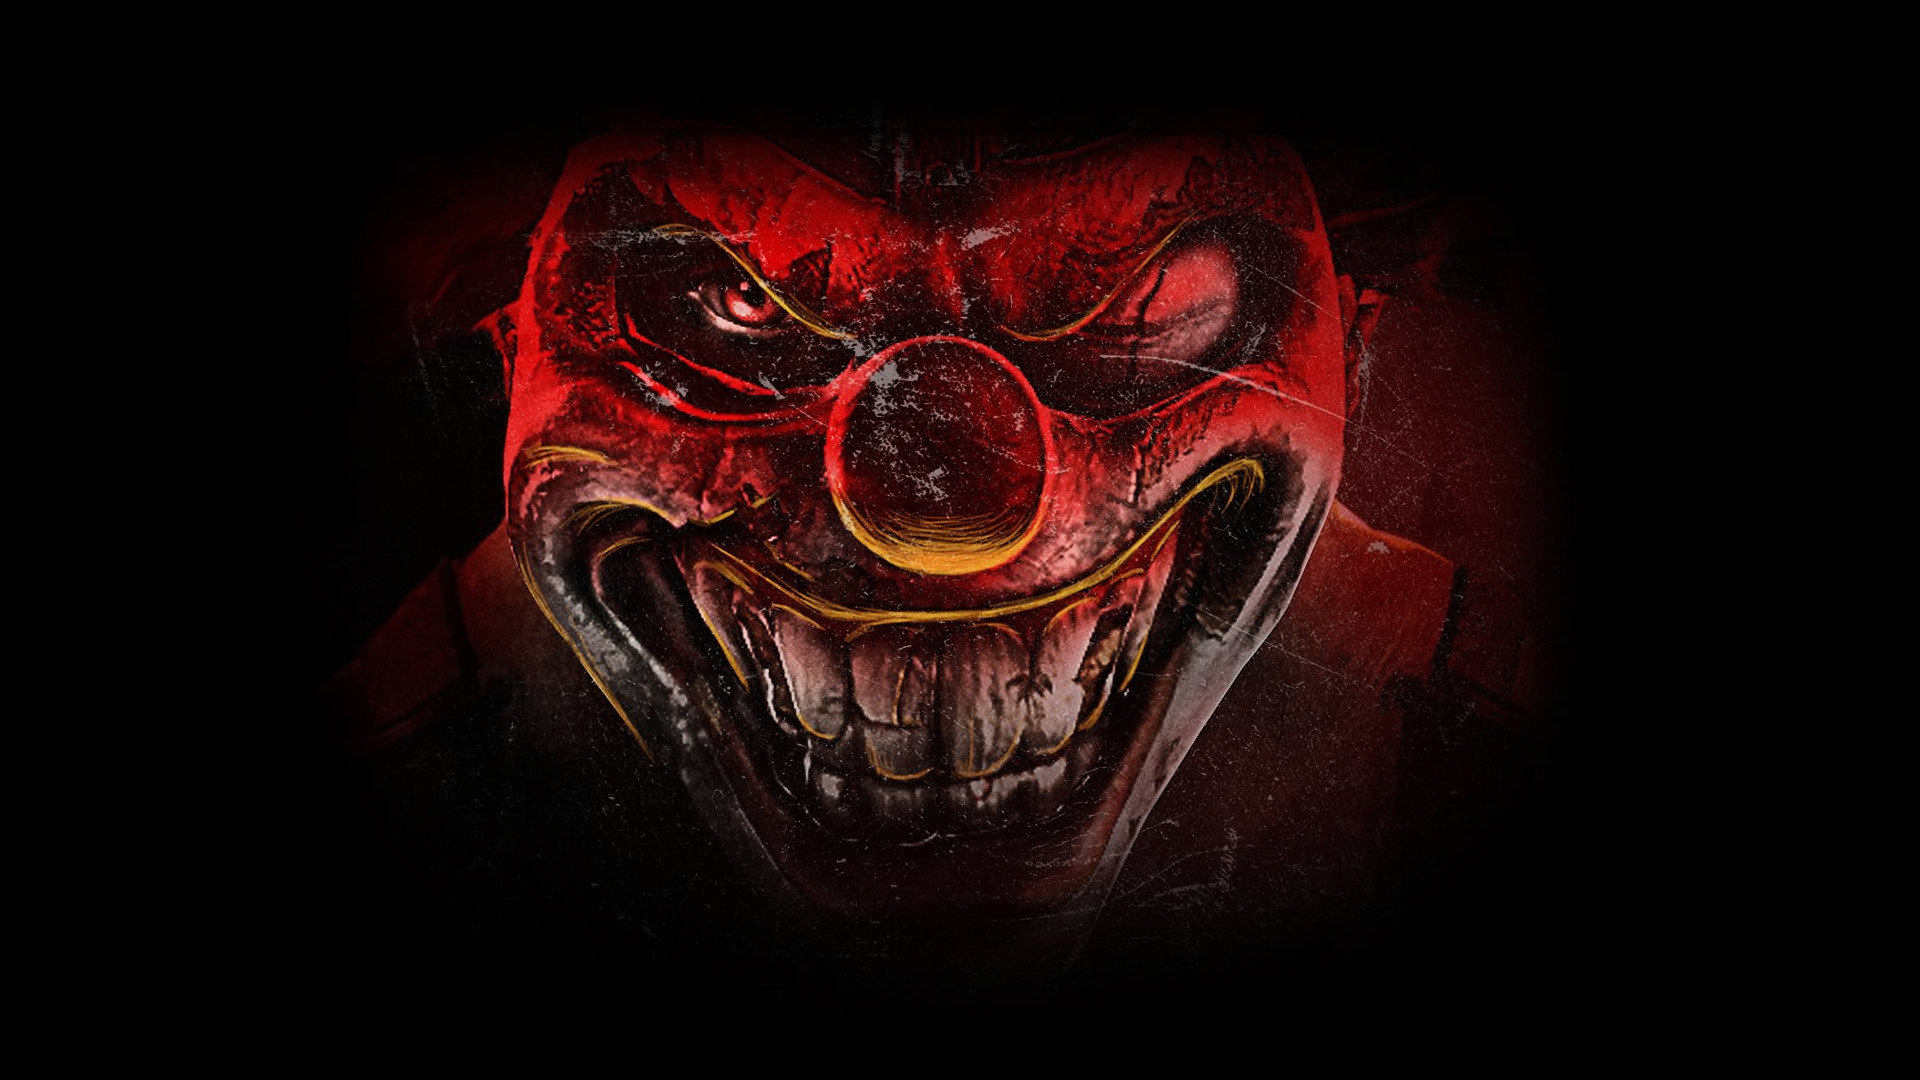 1920x1080 Video Game - Twisted Metal Wallpaper